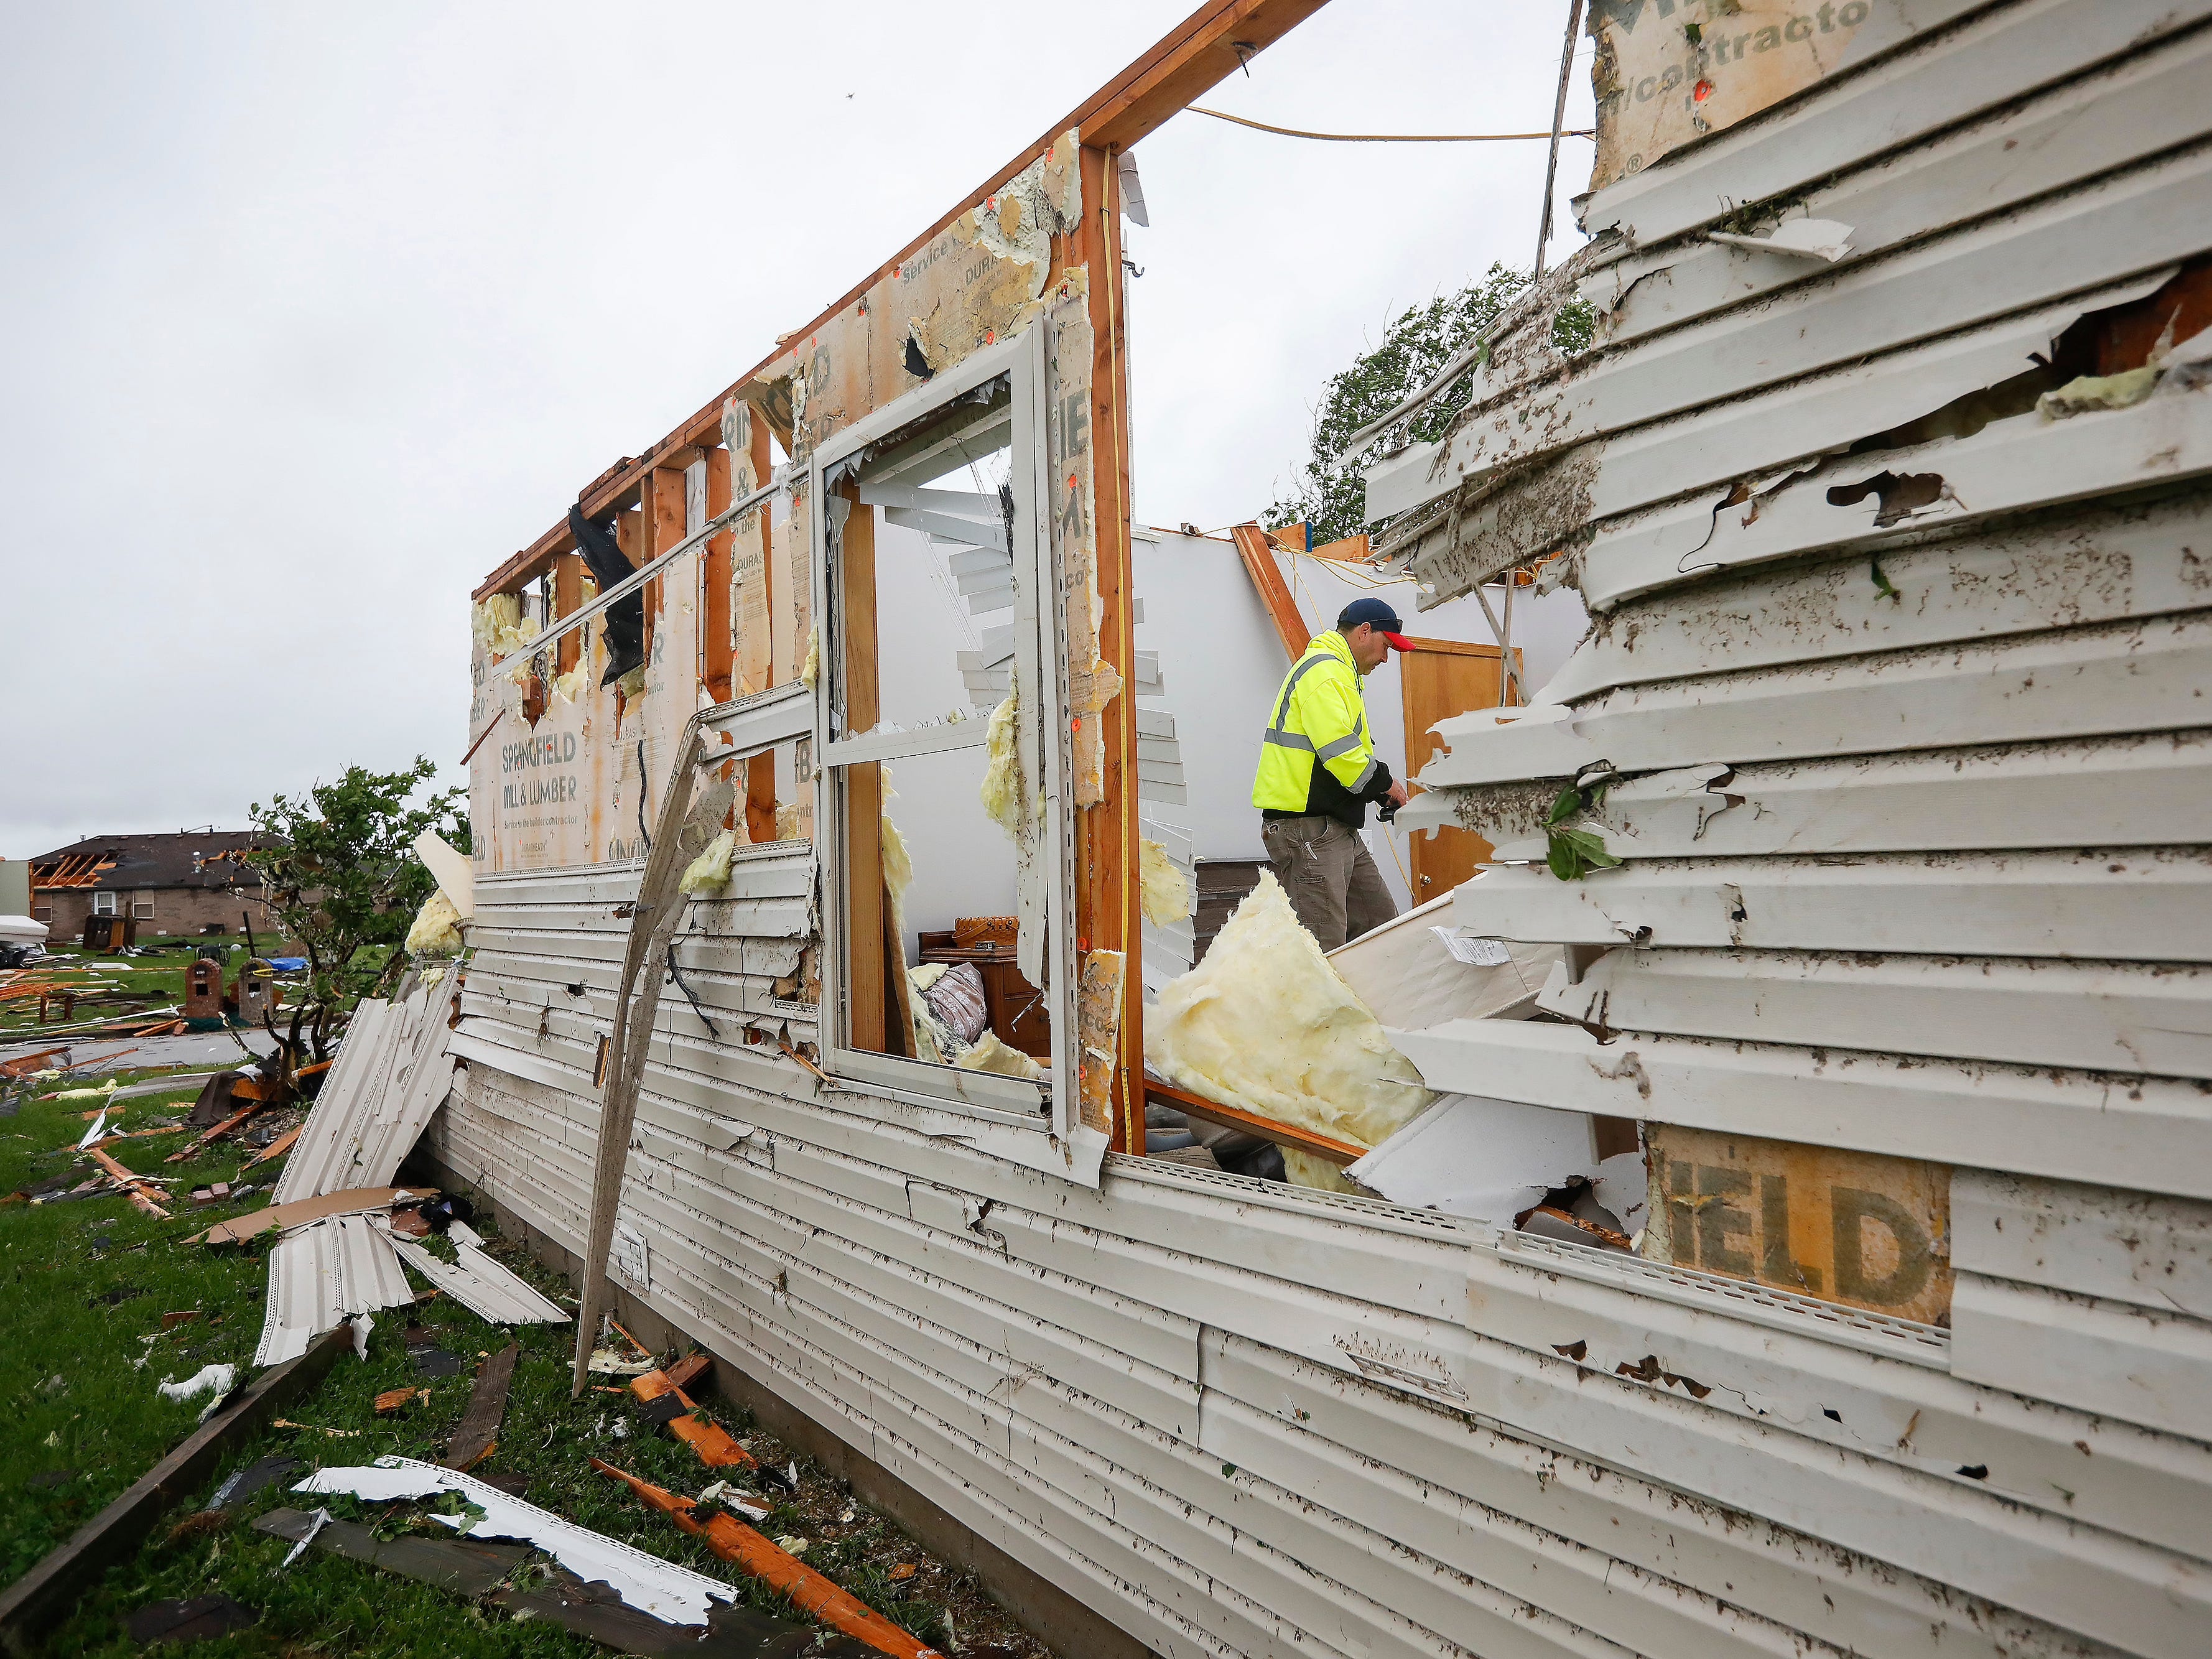 Homes in the Waterford neighborhood were damaged by a likely tornado moved through the Ozark on Tuesday April 30, 2019.